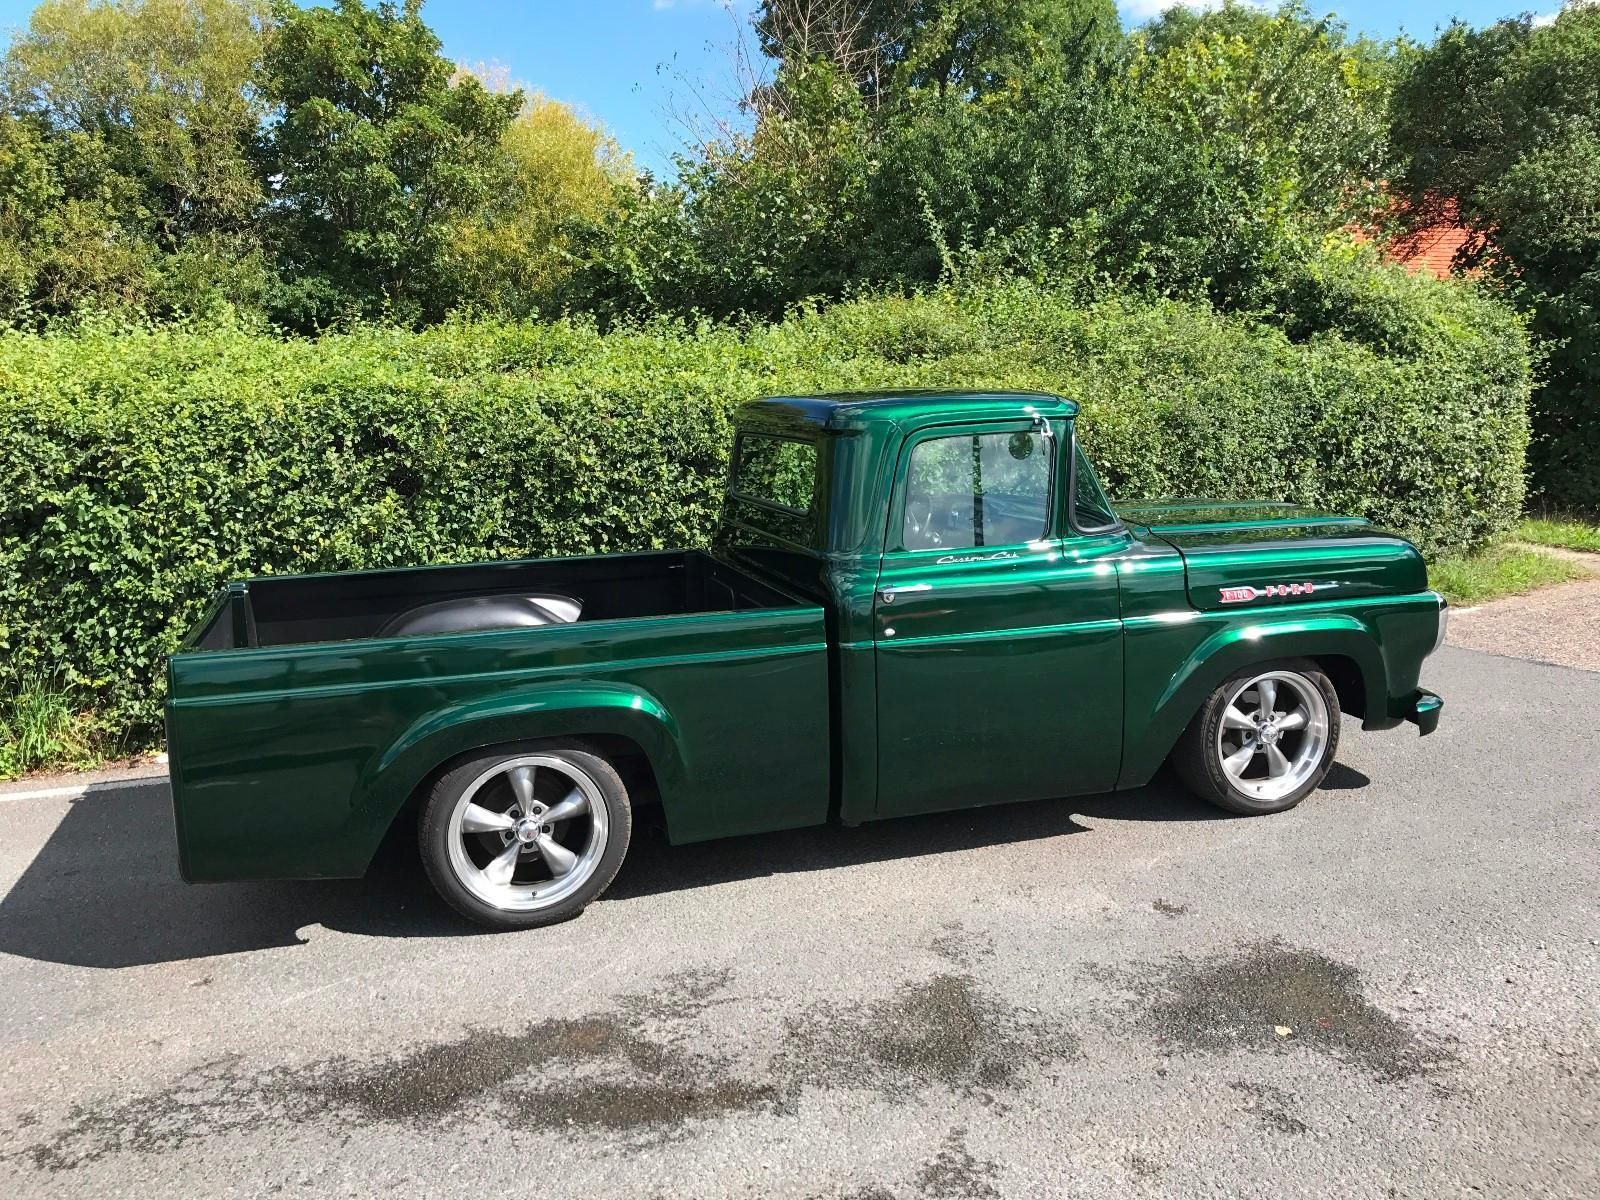 Http Www Ebay Co Uk Itm Ford F100 332328278590 Hash Item4d604f1a3e G Wlyaaoswtzlzgqek Ford Ford Trucks Pallet Chest